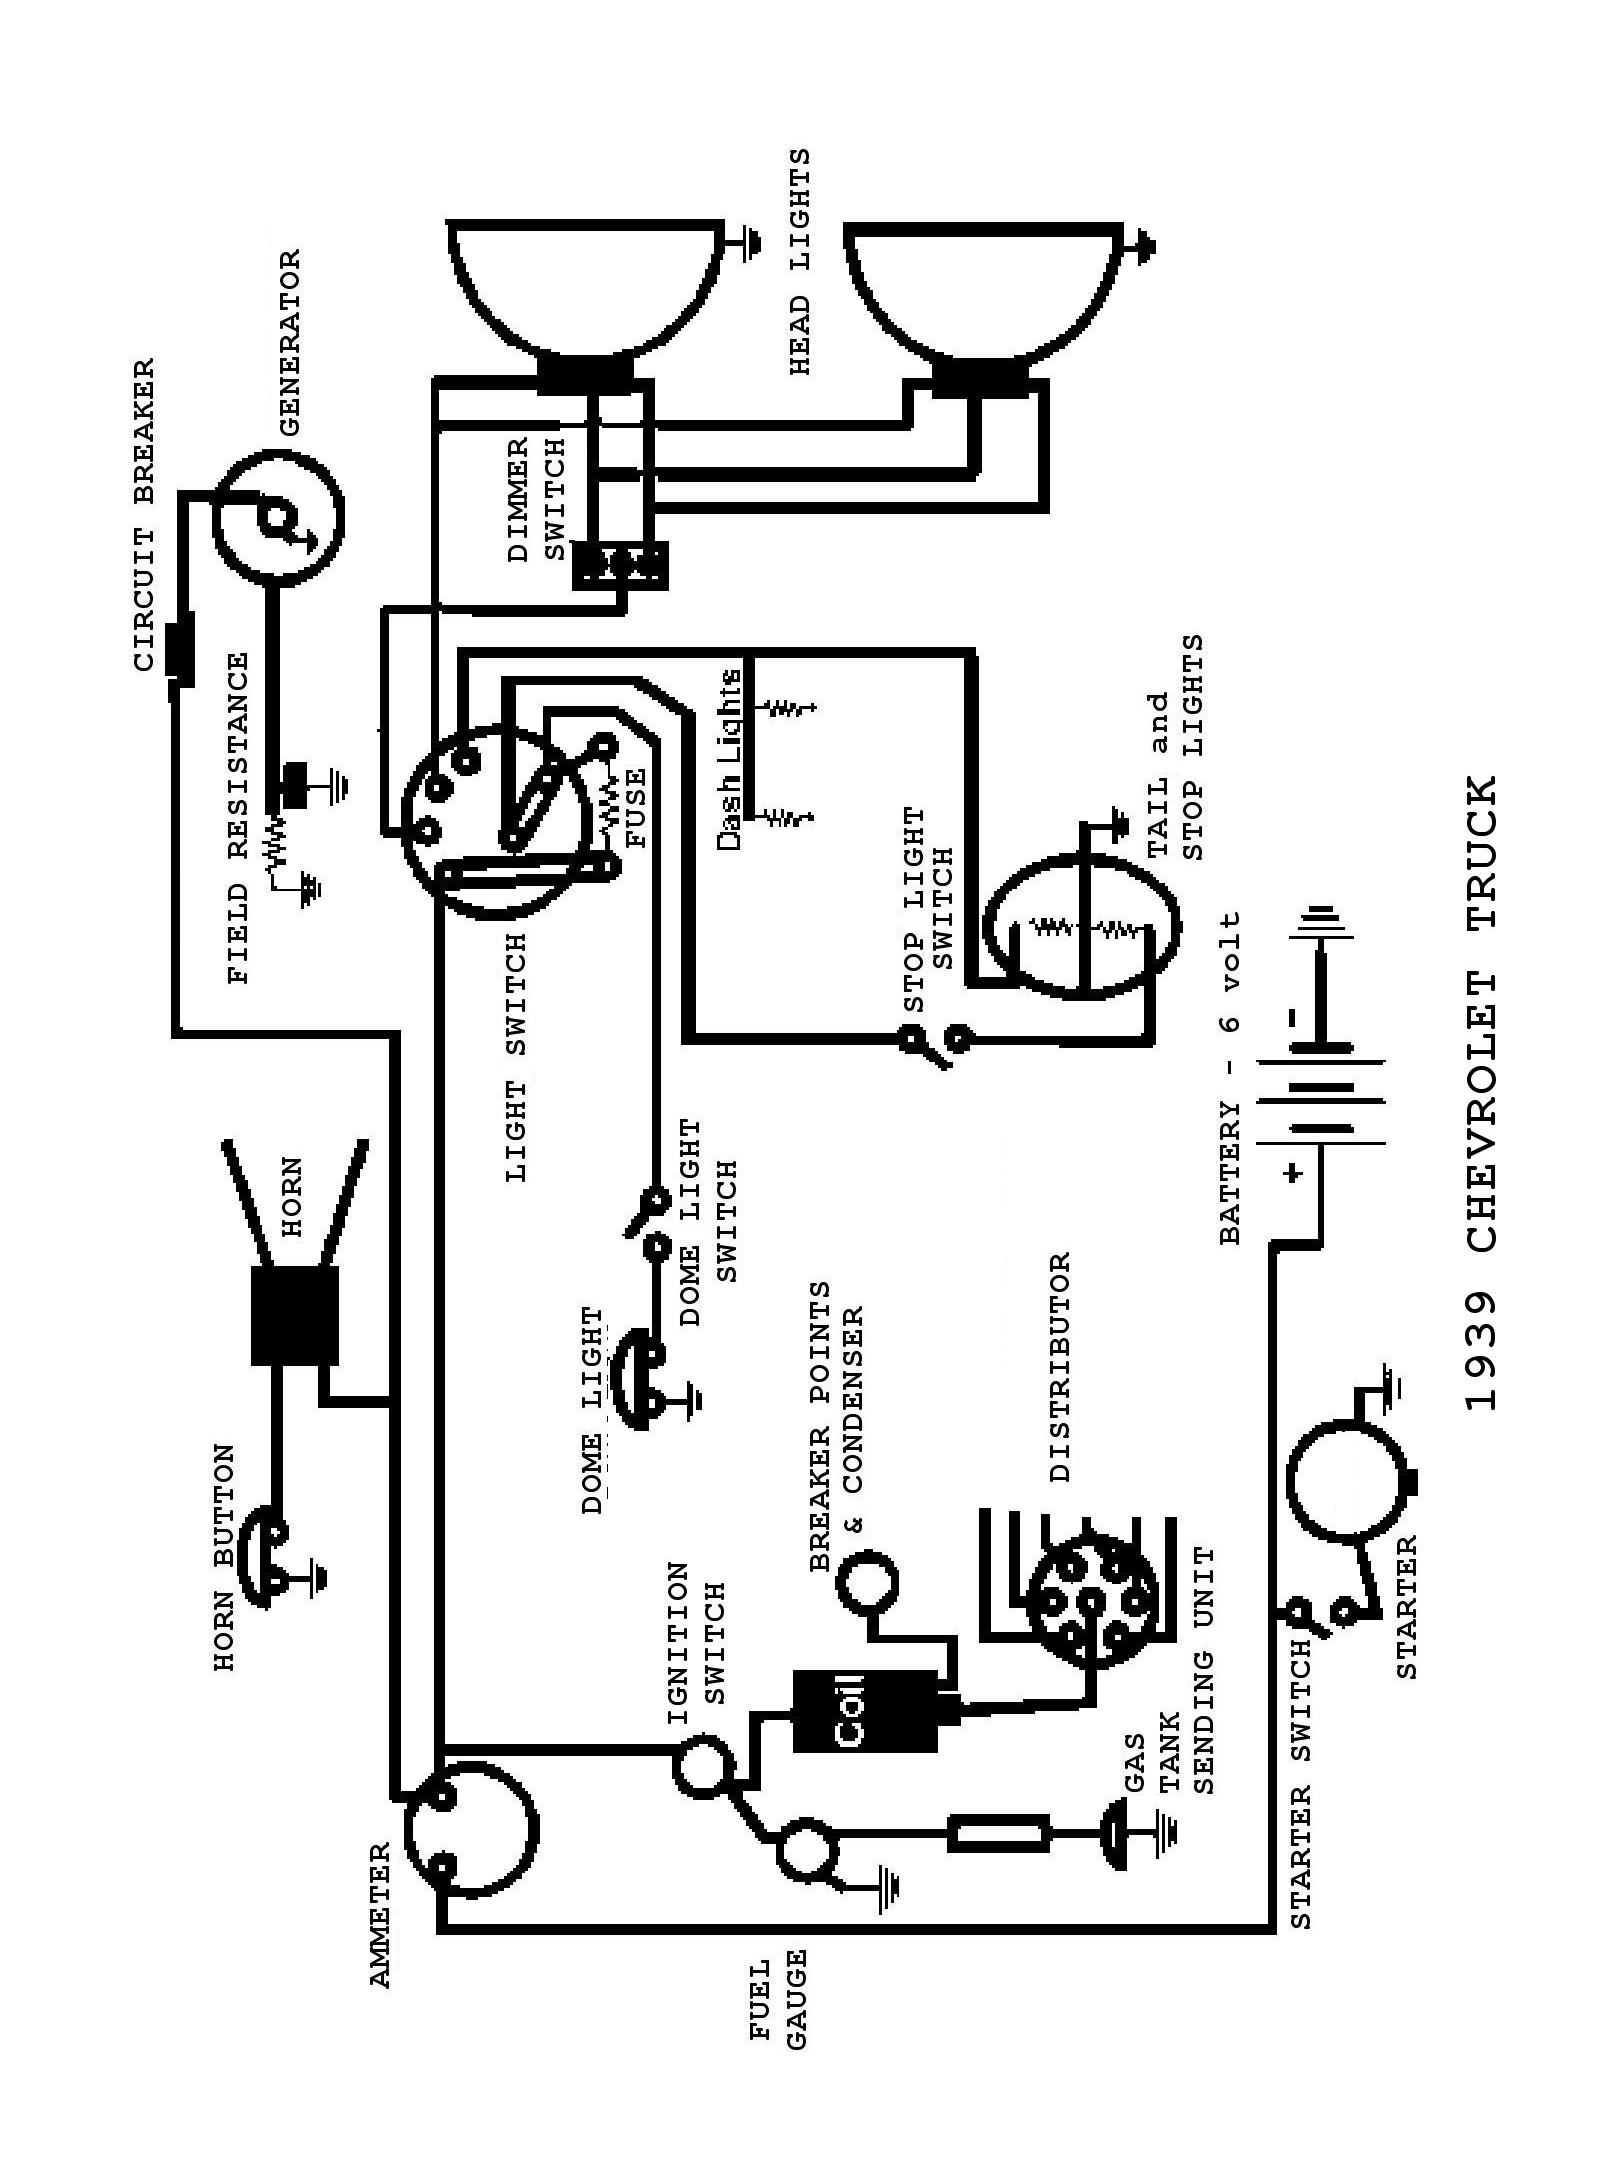 1929 Model A Pick Up Wiring Diagram Wiring Library